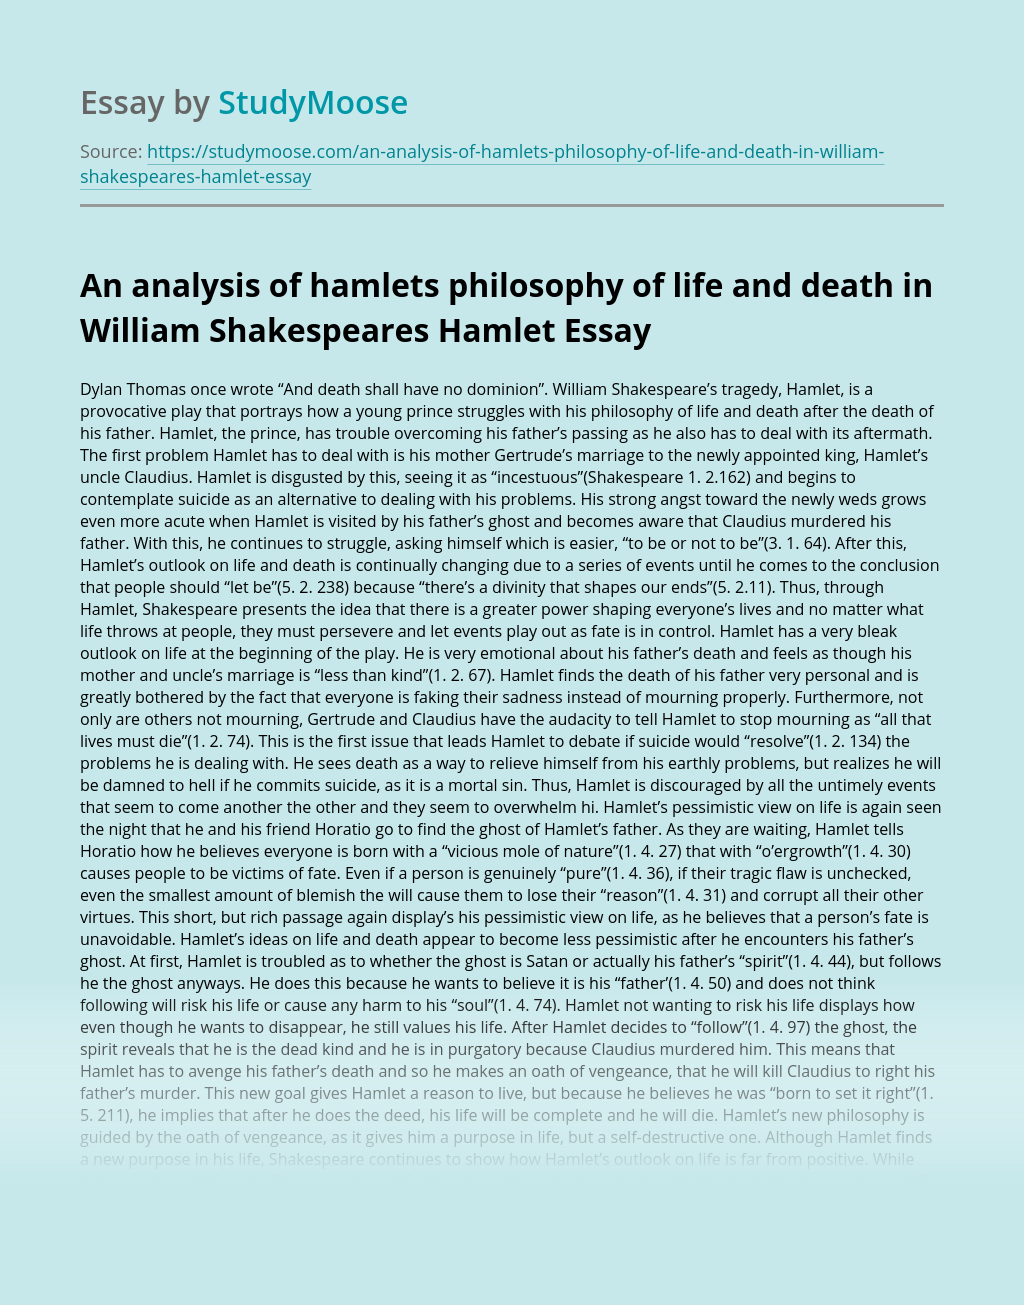 An analysis of hamlets philosophy of life and death in William Shakespeares Hamlet